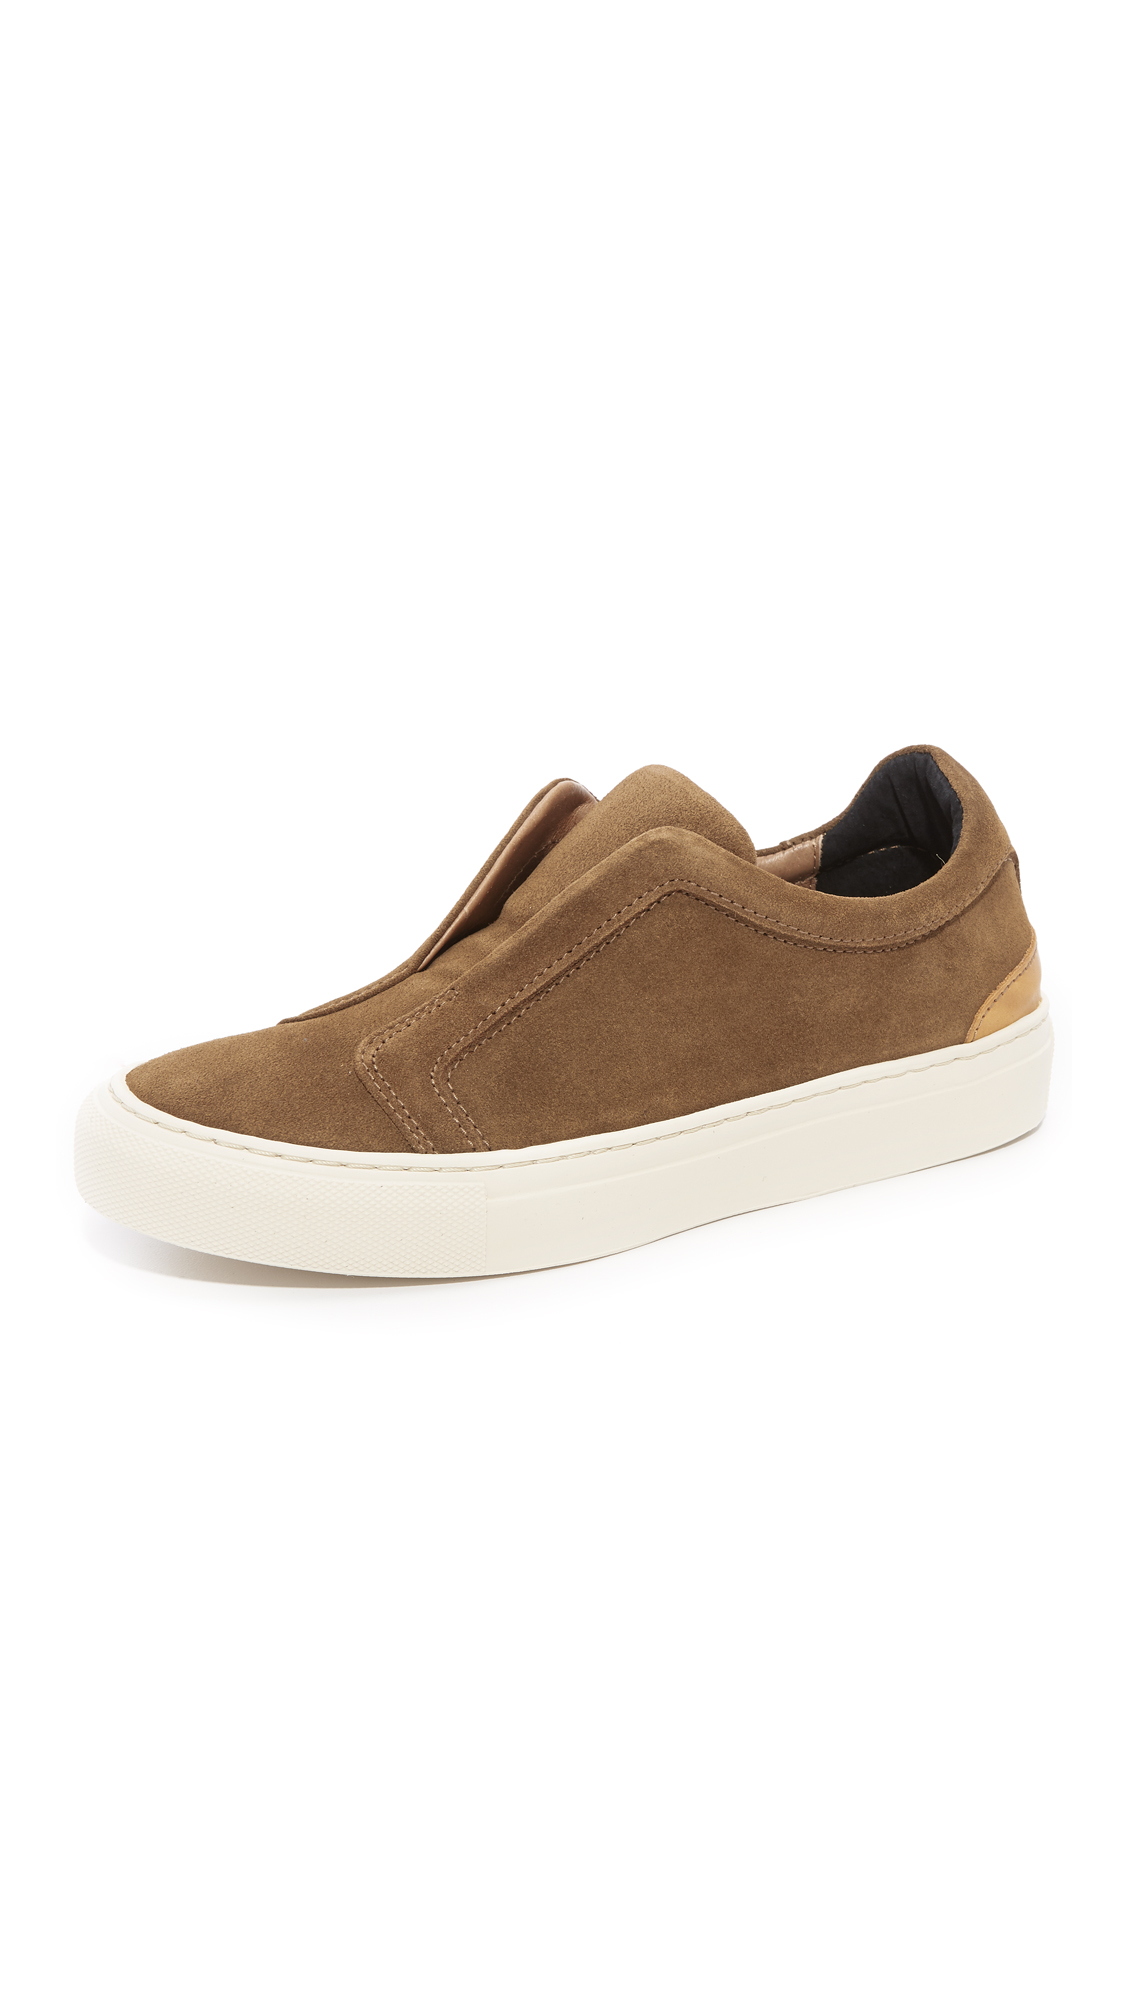 Matt Bernson Alchemist Slip On Sneakers - Pwt #2